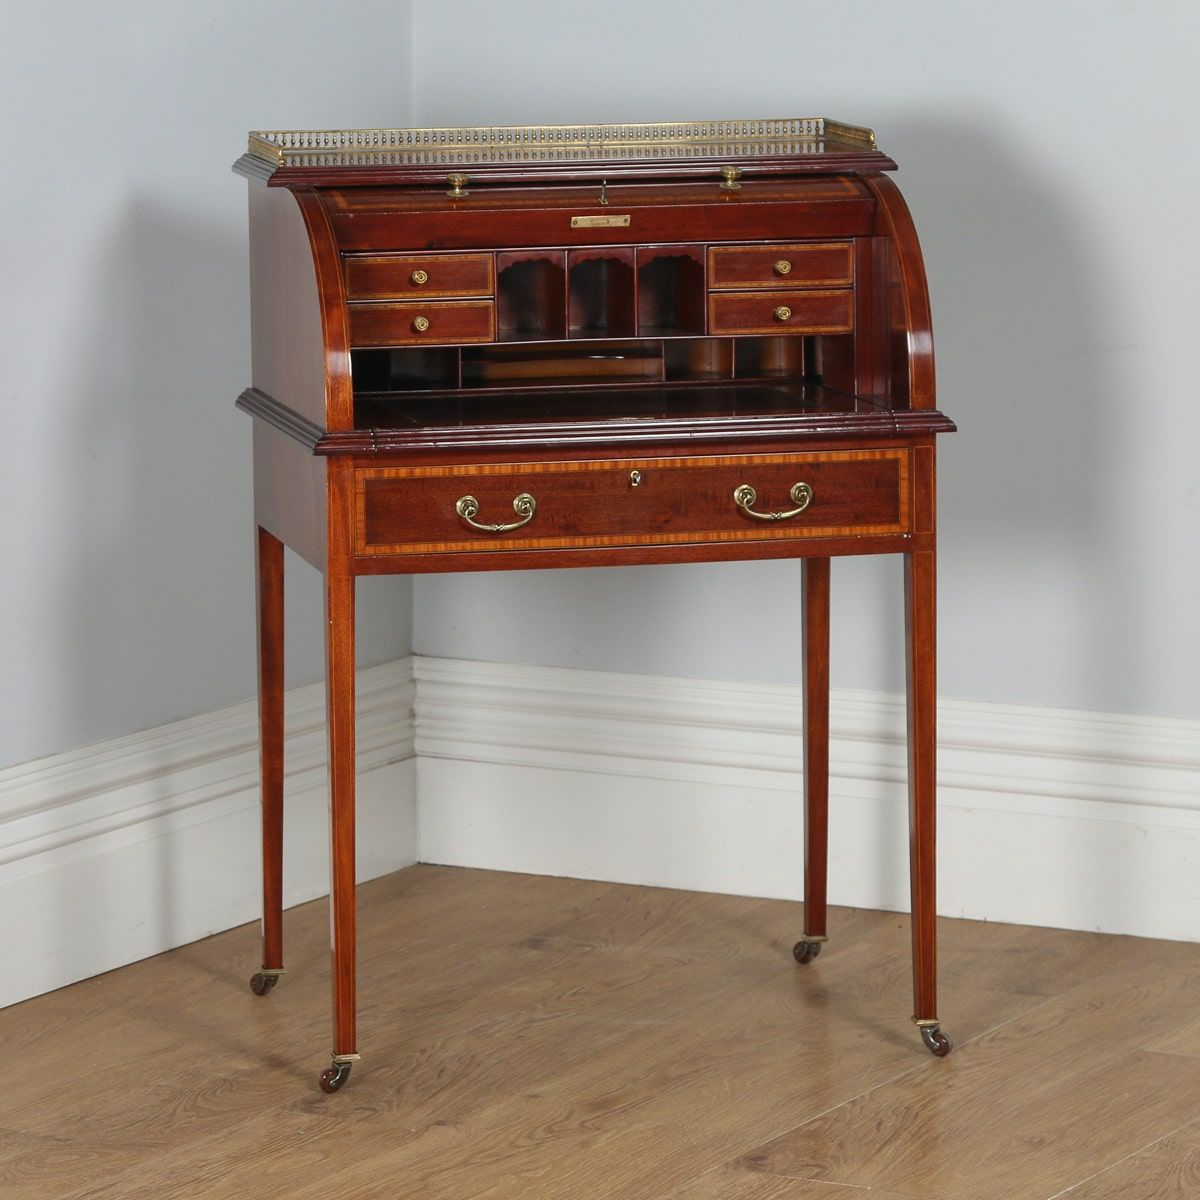 This is a superb quality antique Edwardian ladies mahogany and leather  inlaid cylinder desk, circa in good original condition. - Antique English Edwardian Ladies Mahogany & Leather Cylinder Roll